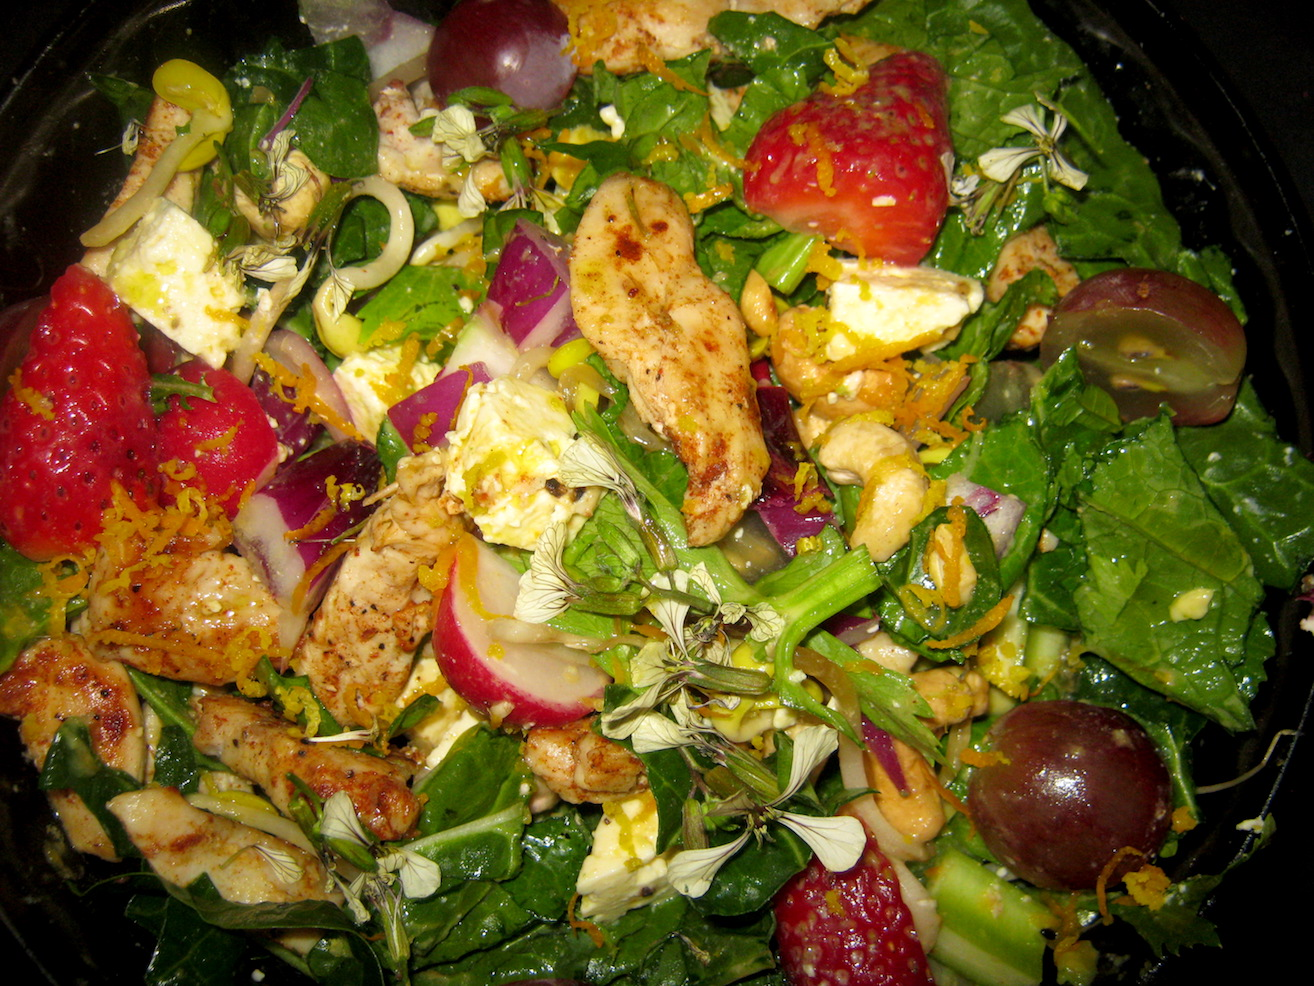 Colorful chicken salad in a bowl